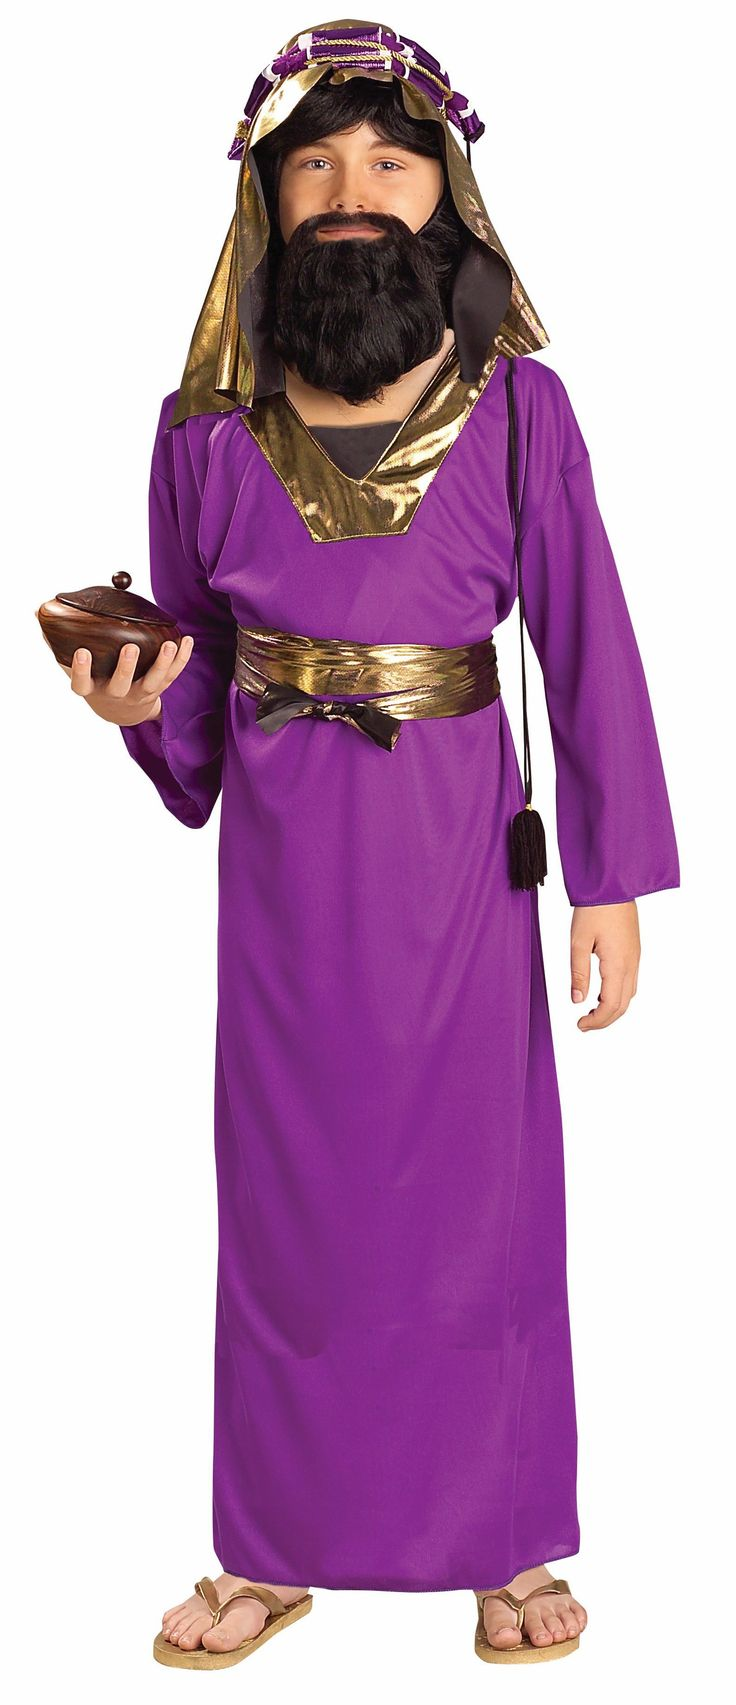 25 best christmas kids costumes images on pinterest baby costumes childrens purple wiseman christmas costume the childrens purple wiseman christmas costume is perfect for your solutioingenieria Choice Image